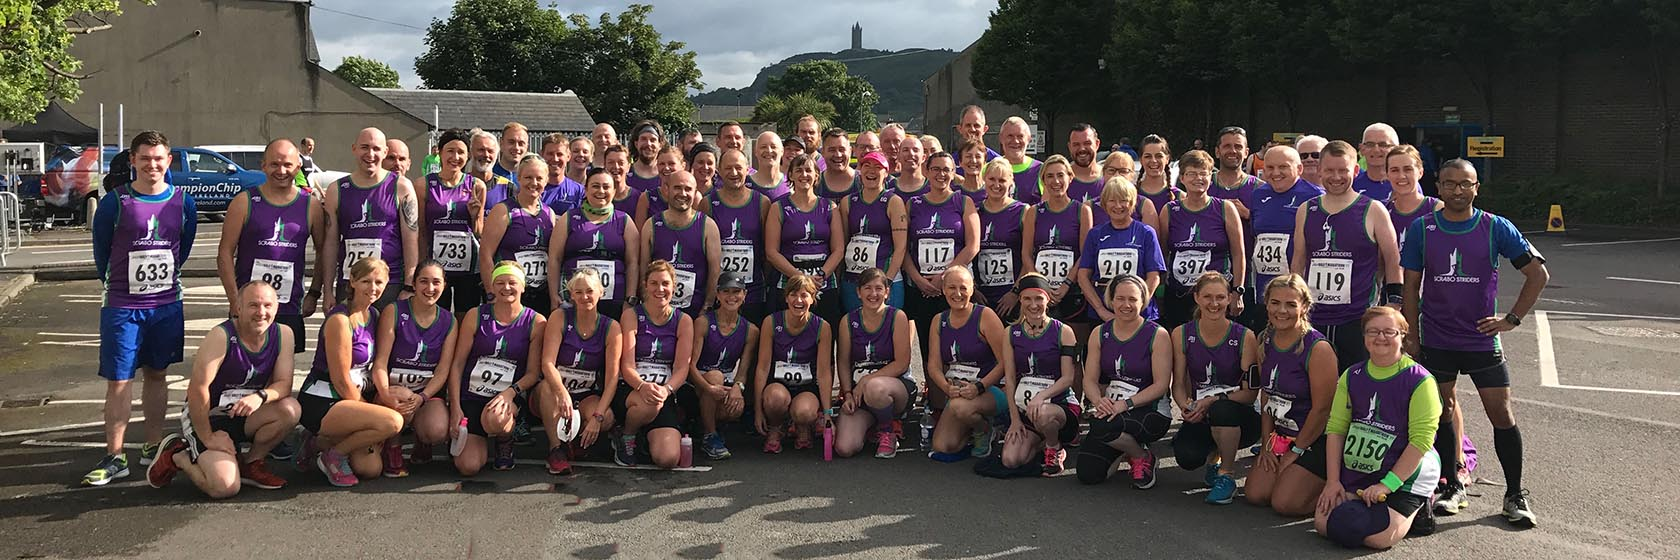 Striders at the Ards Half Marathon 2016